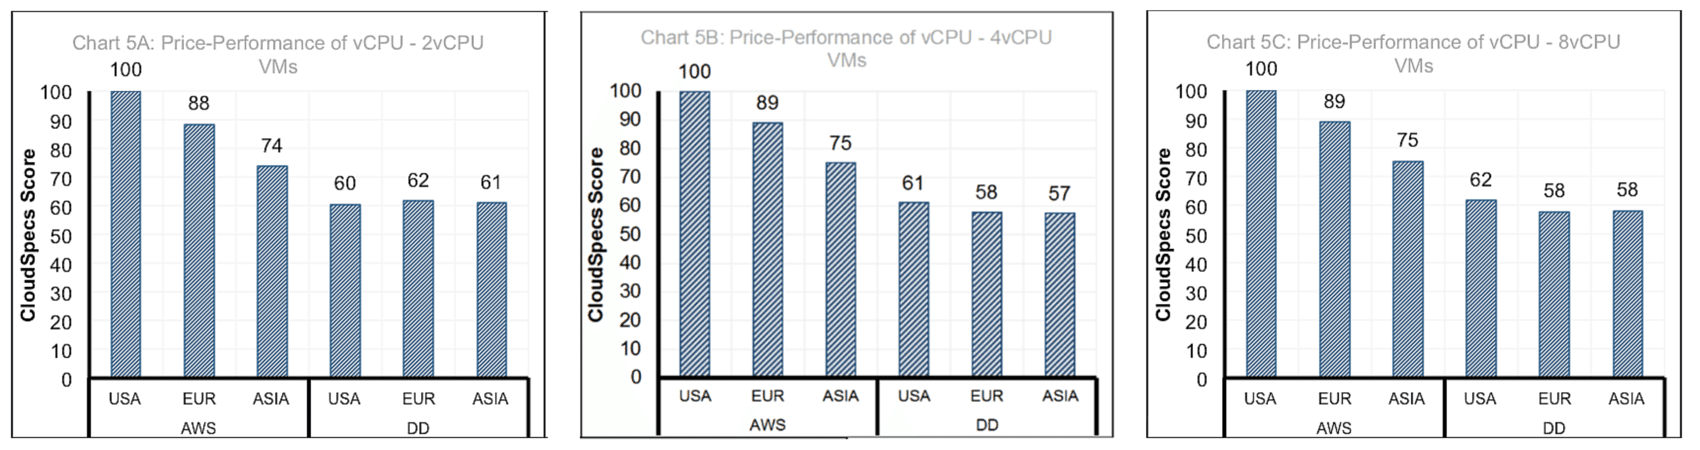 Price Performance of vCPU comparison graphs, for 2, 4 and 8vCPU VMs